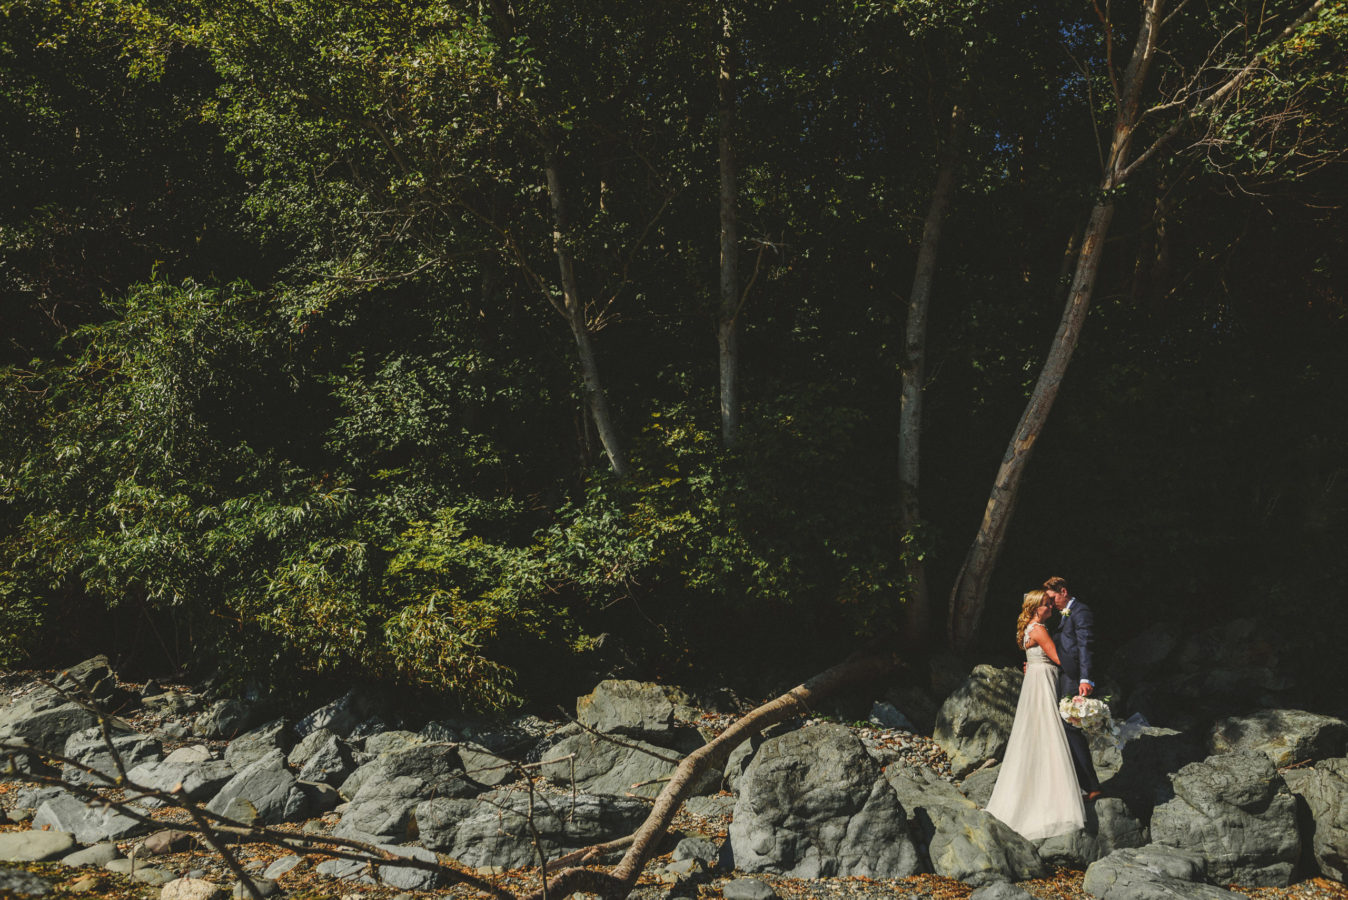 bride and groom kissing at the edge of a beach with tall trees behind them